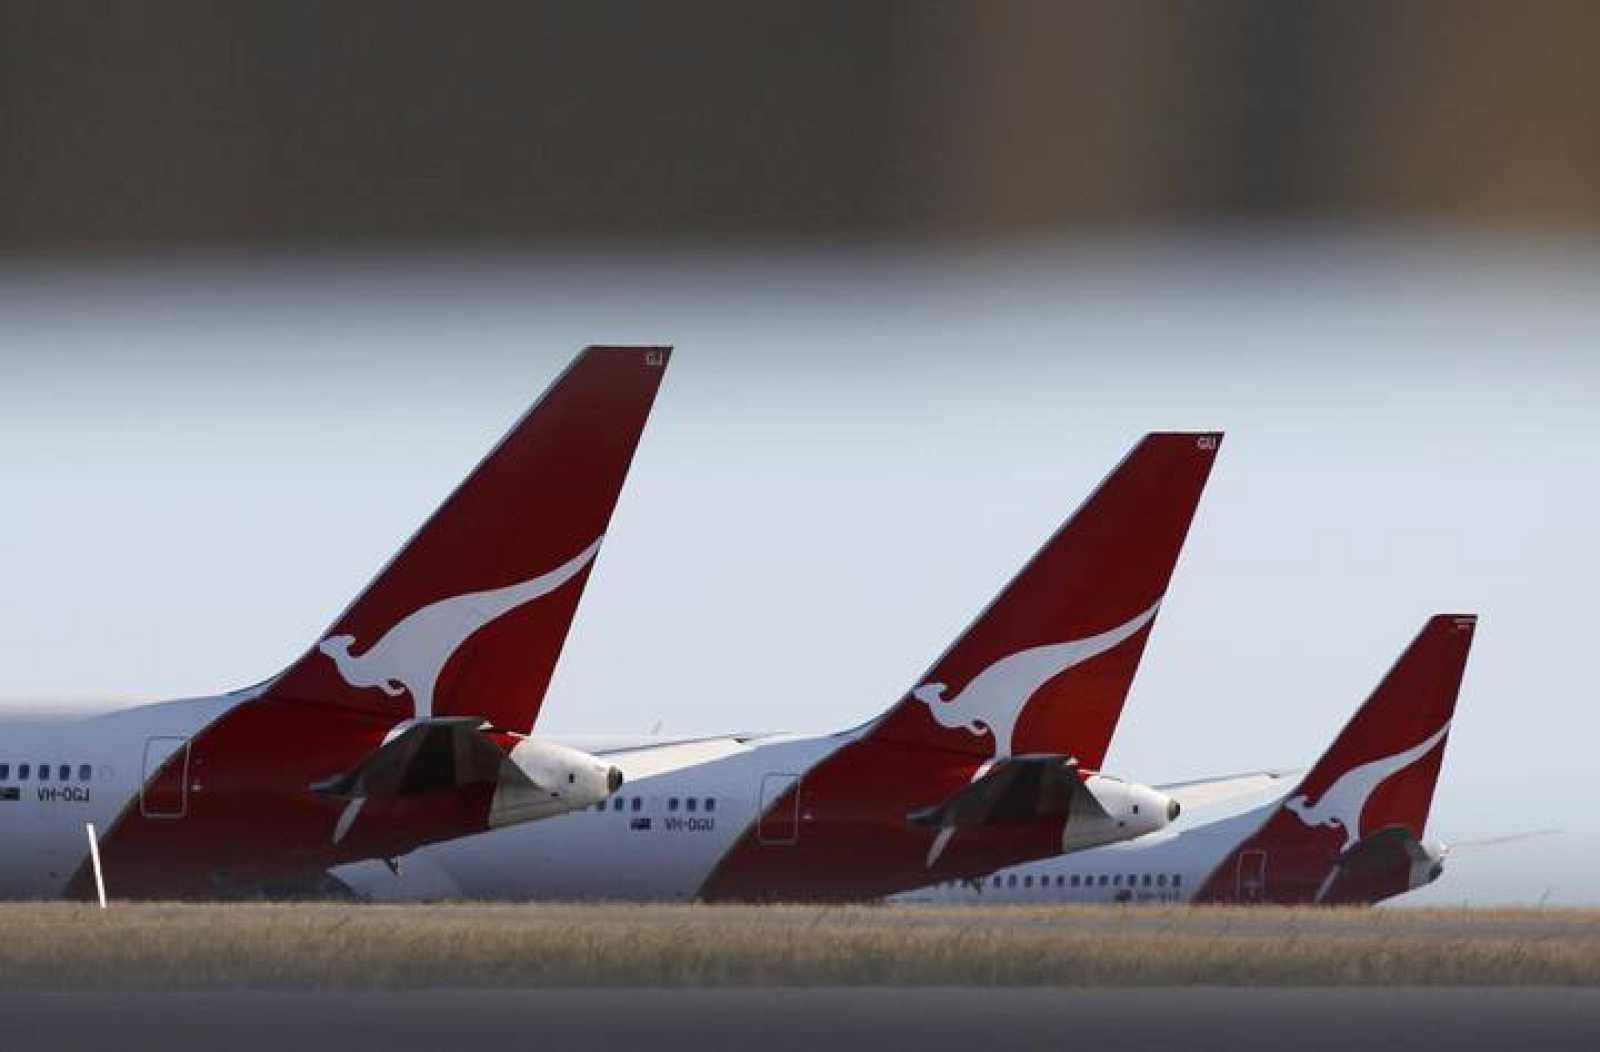 Qantas planes are seen grounded at Perth international airport